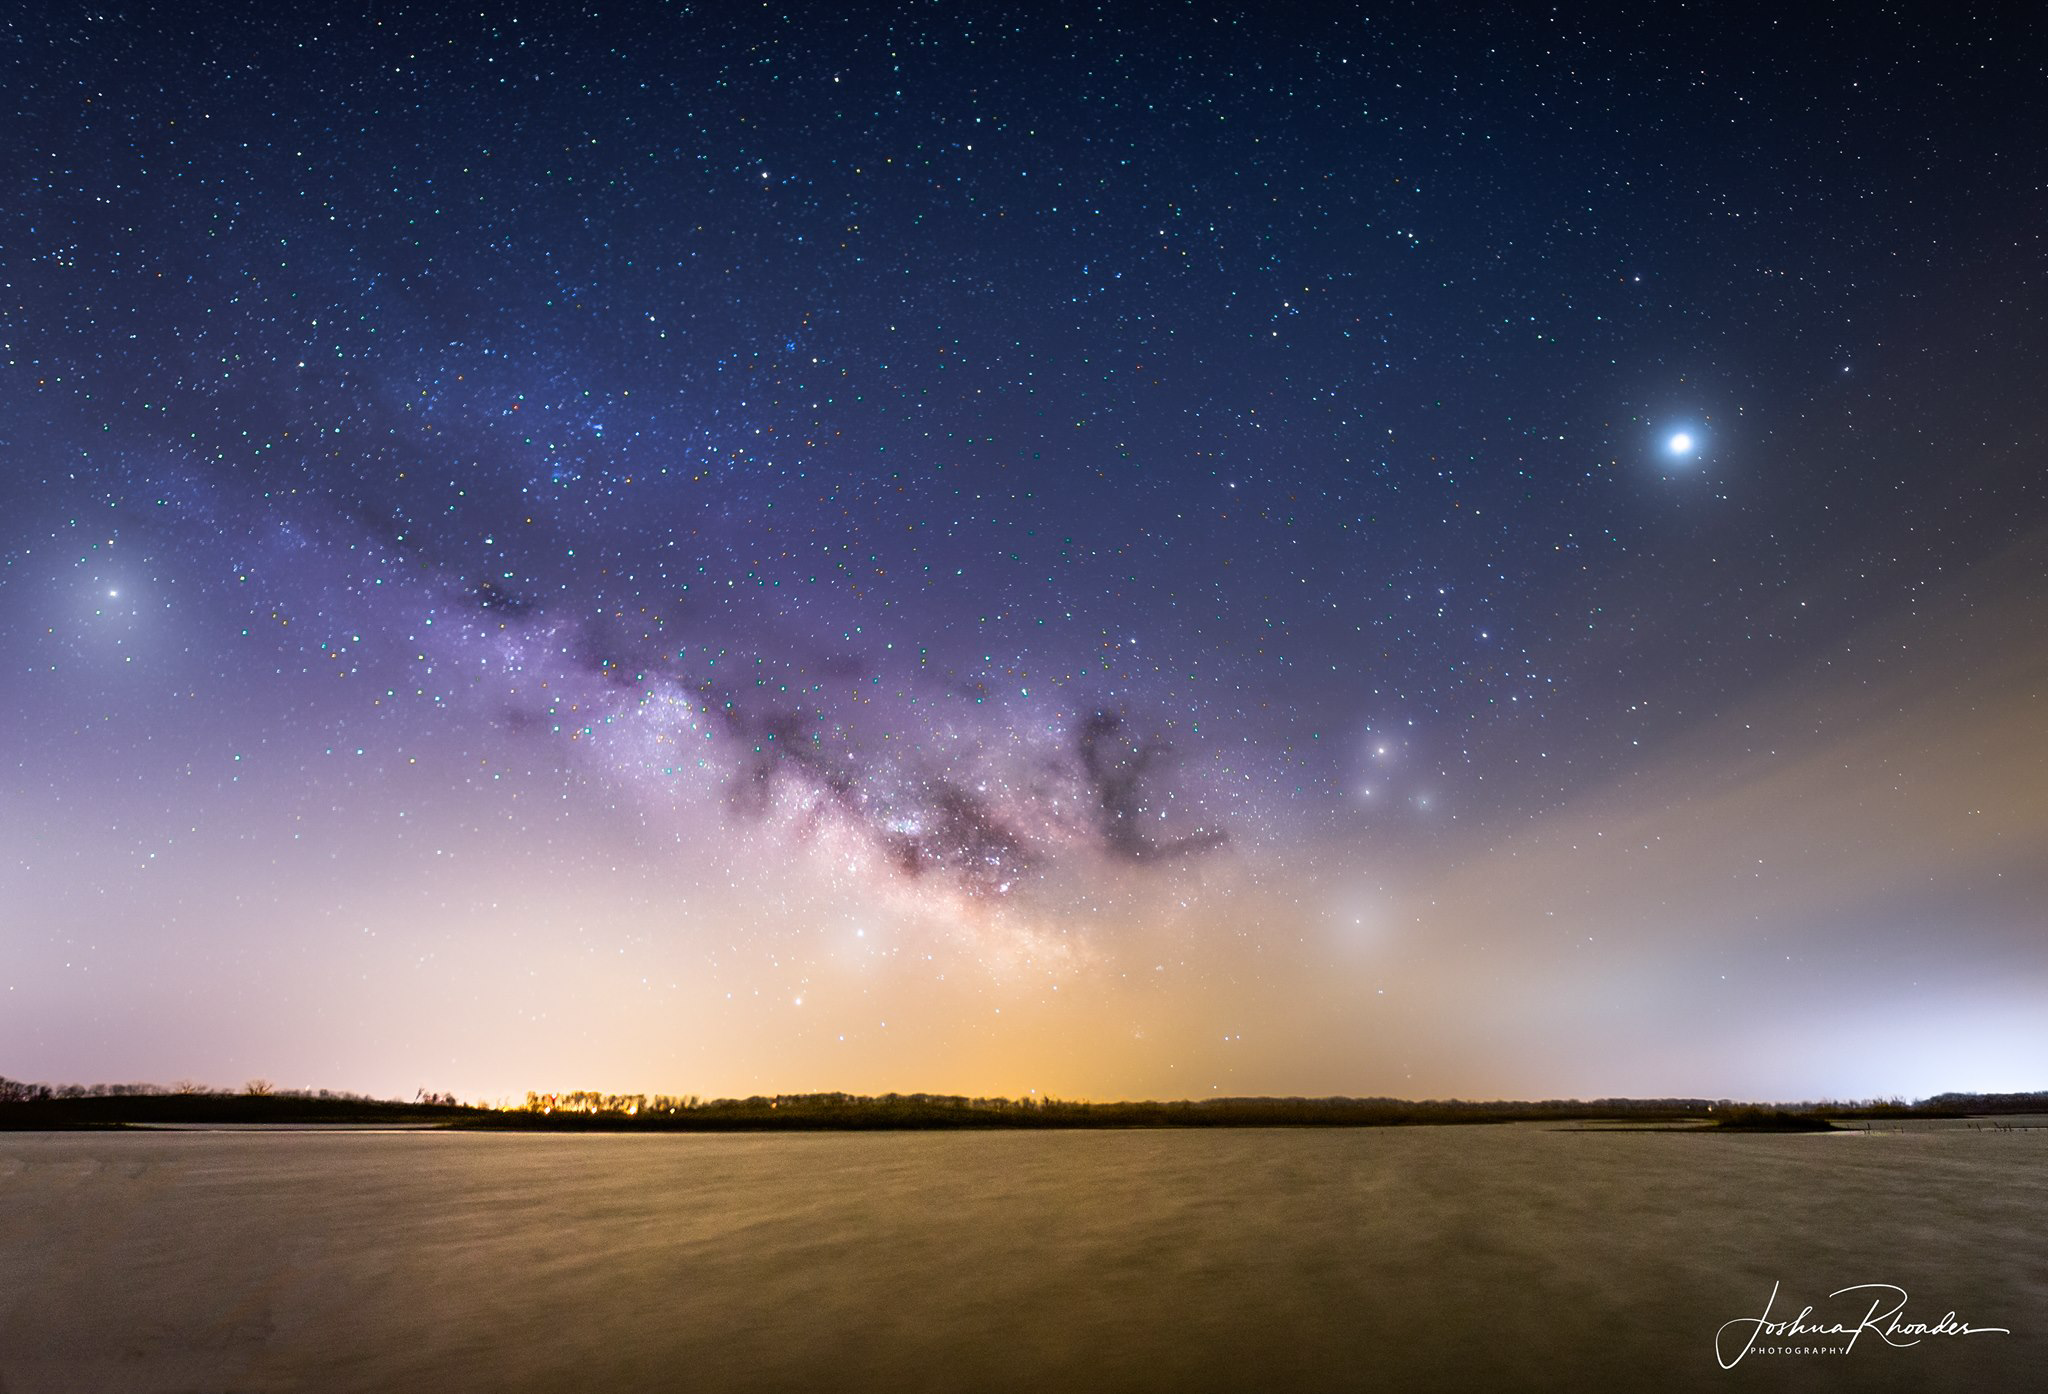 Photographing The Milky Way In Panorama Using A DSLR